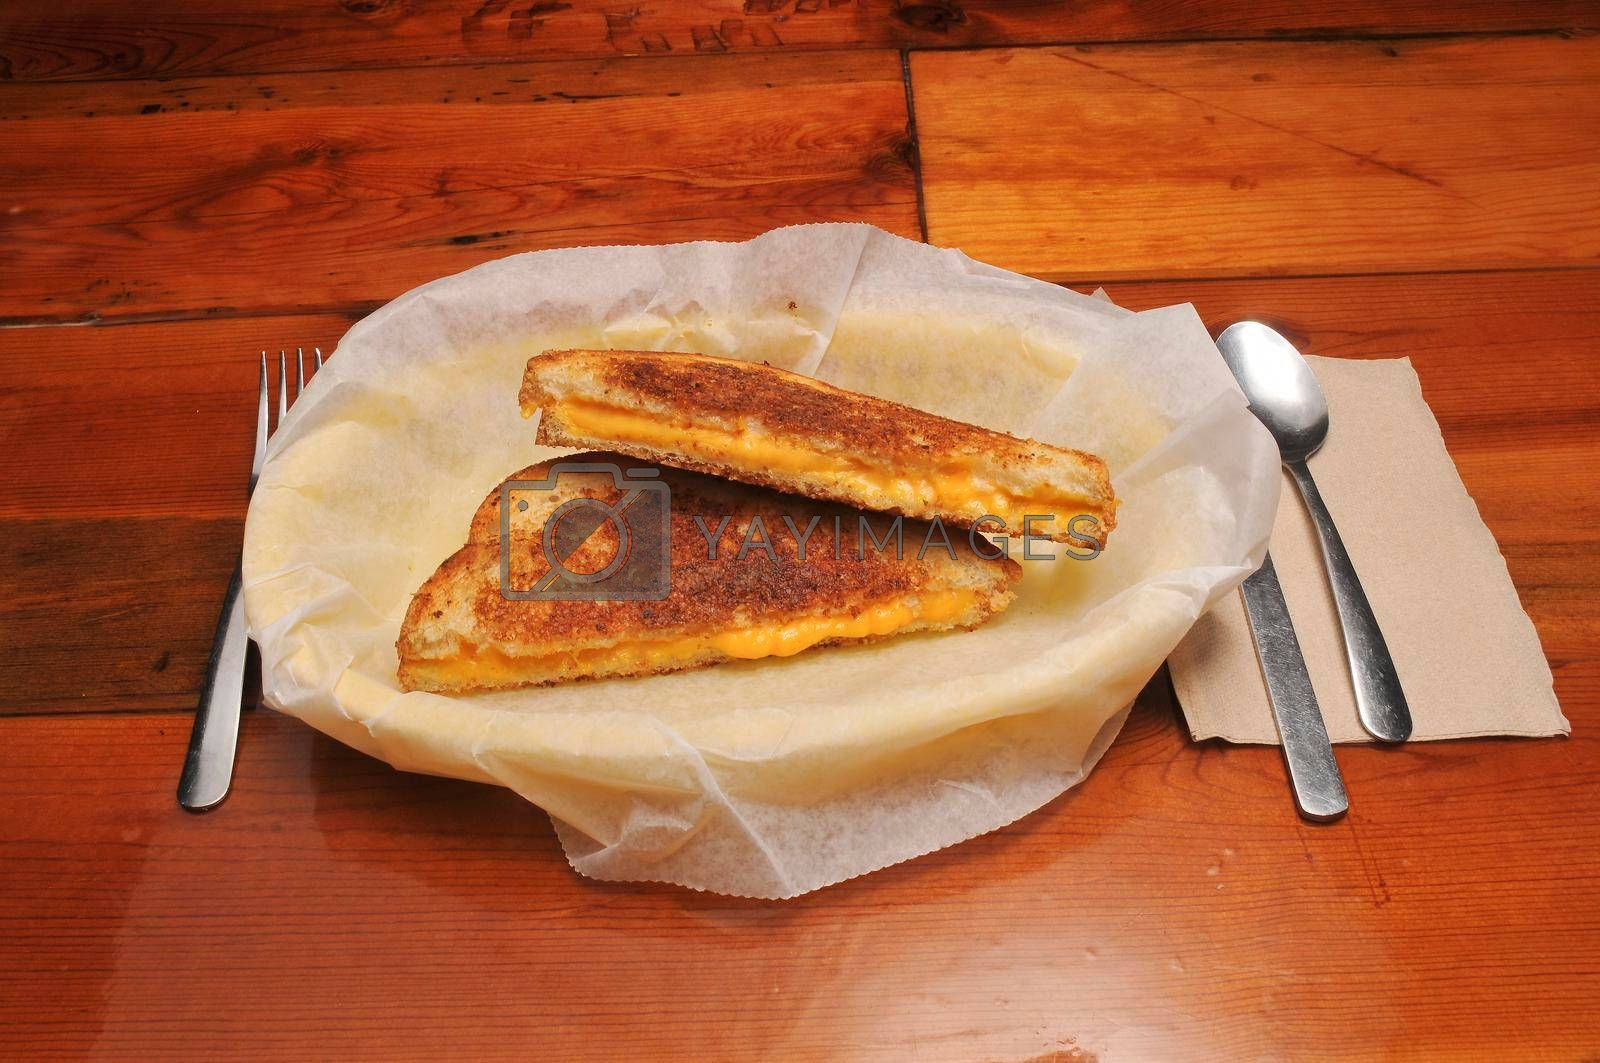 Classic American cuisine known as the grilled cheese sandwich.